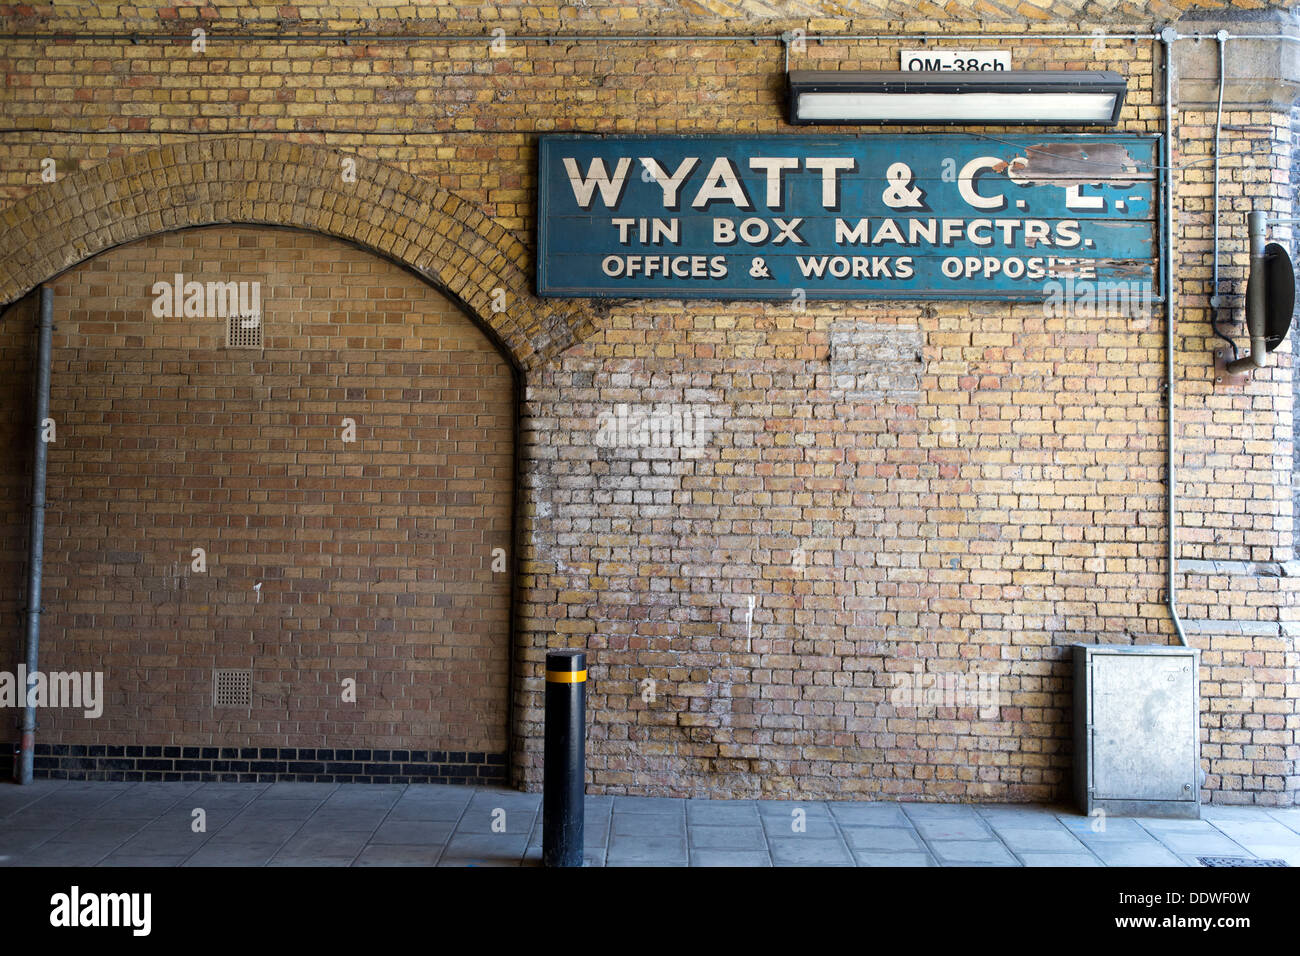 Wyatt & Co. Ltd. Tin Box Manfctrs. Old sign in Tanner Street, Southwark. London, England, UK. - Stock Image